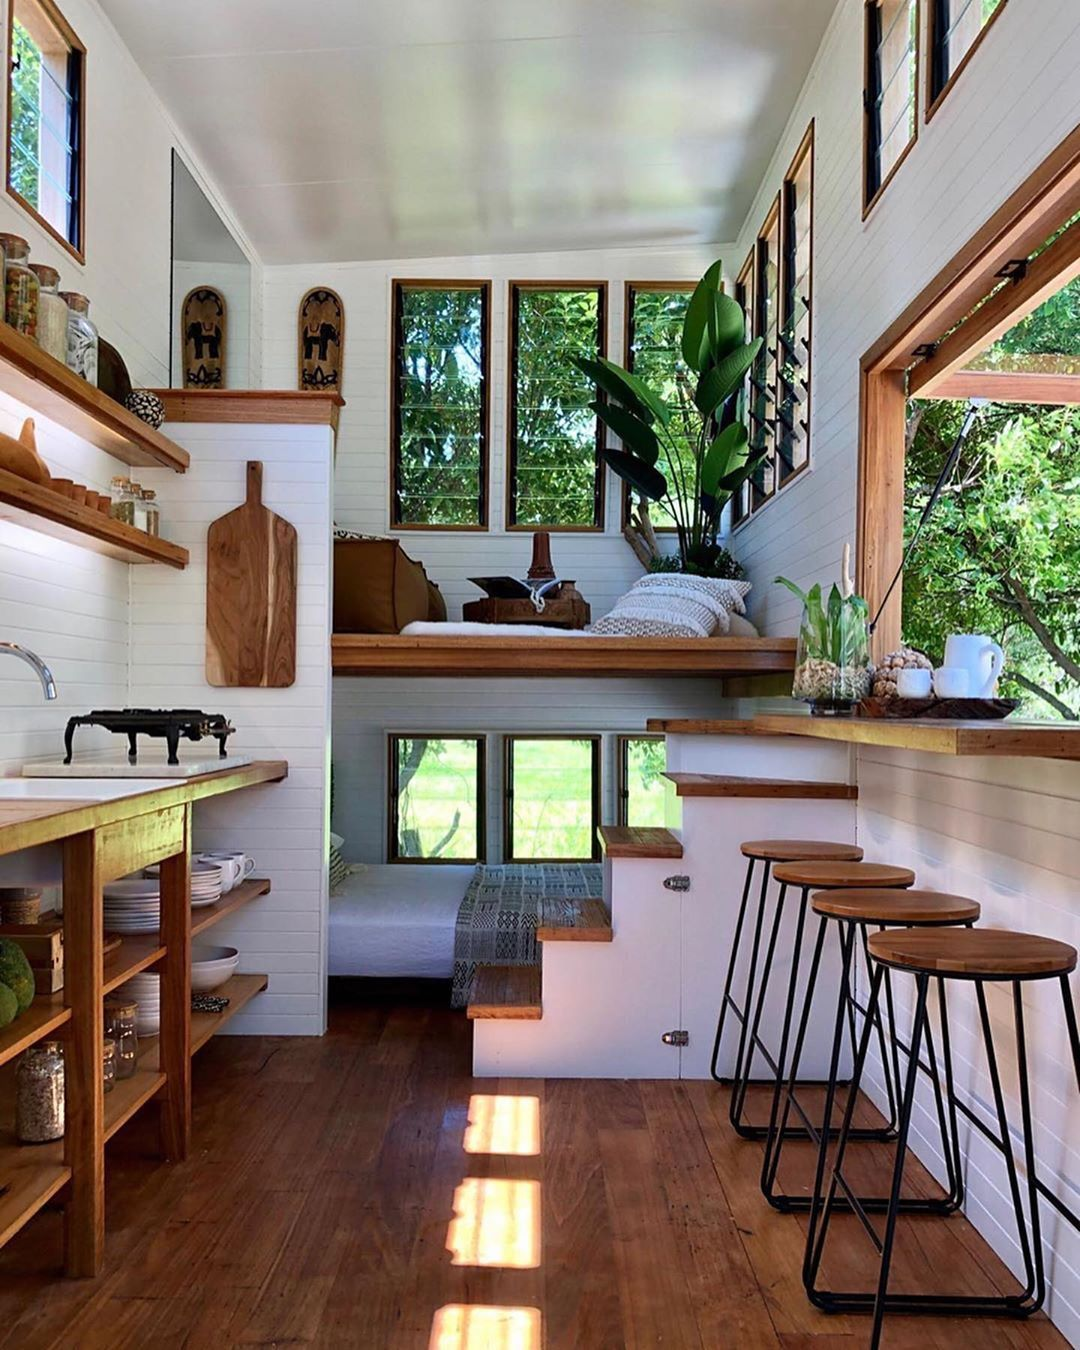 Top 10 Spectacular Tree Houses in The World | Tiny house interior design,  Tiny house living, Tiny house decor